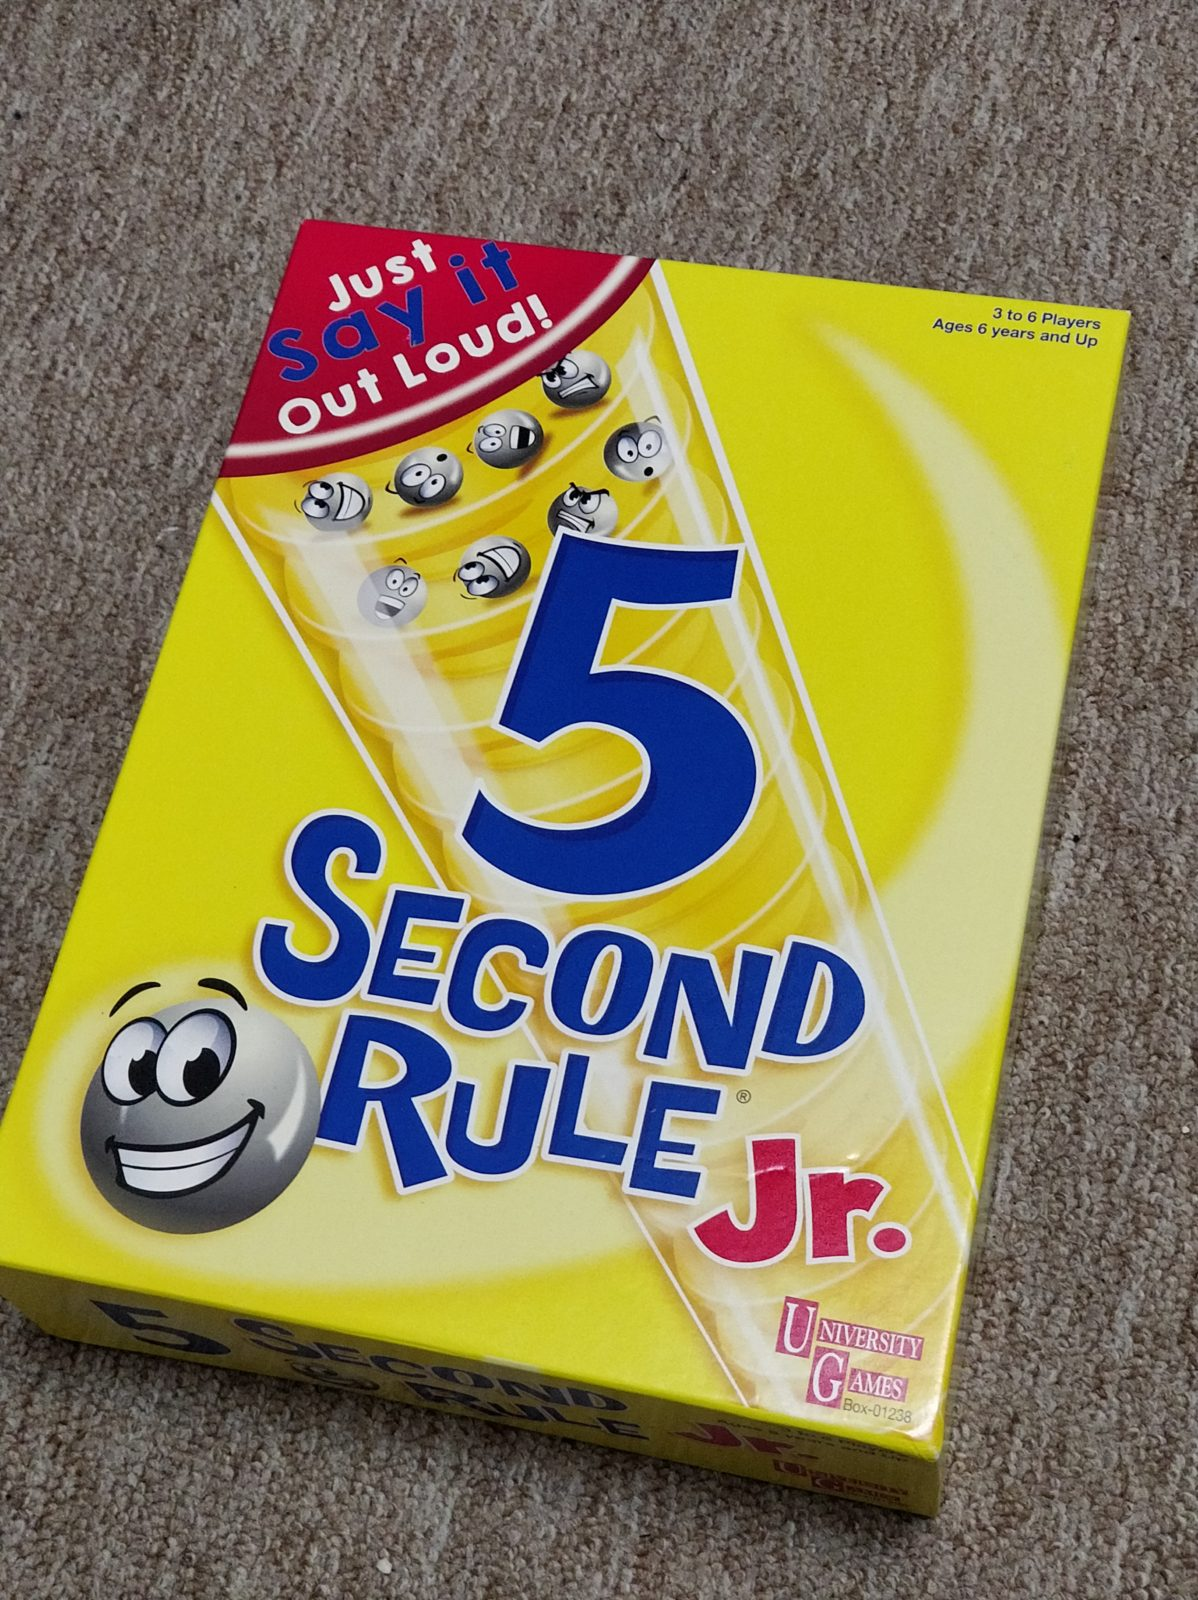 5 second rule game instructions